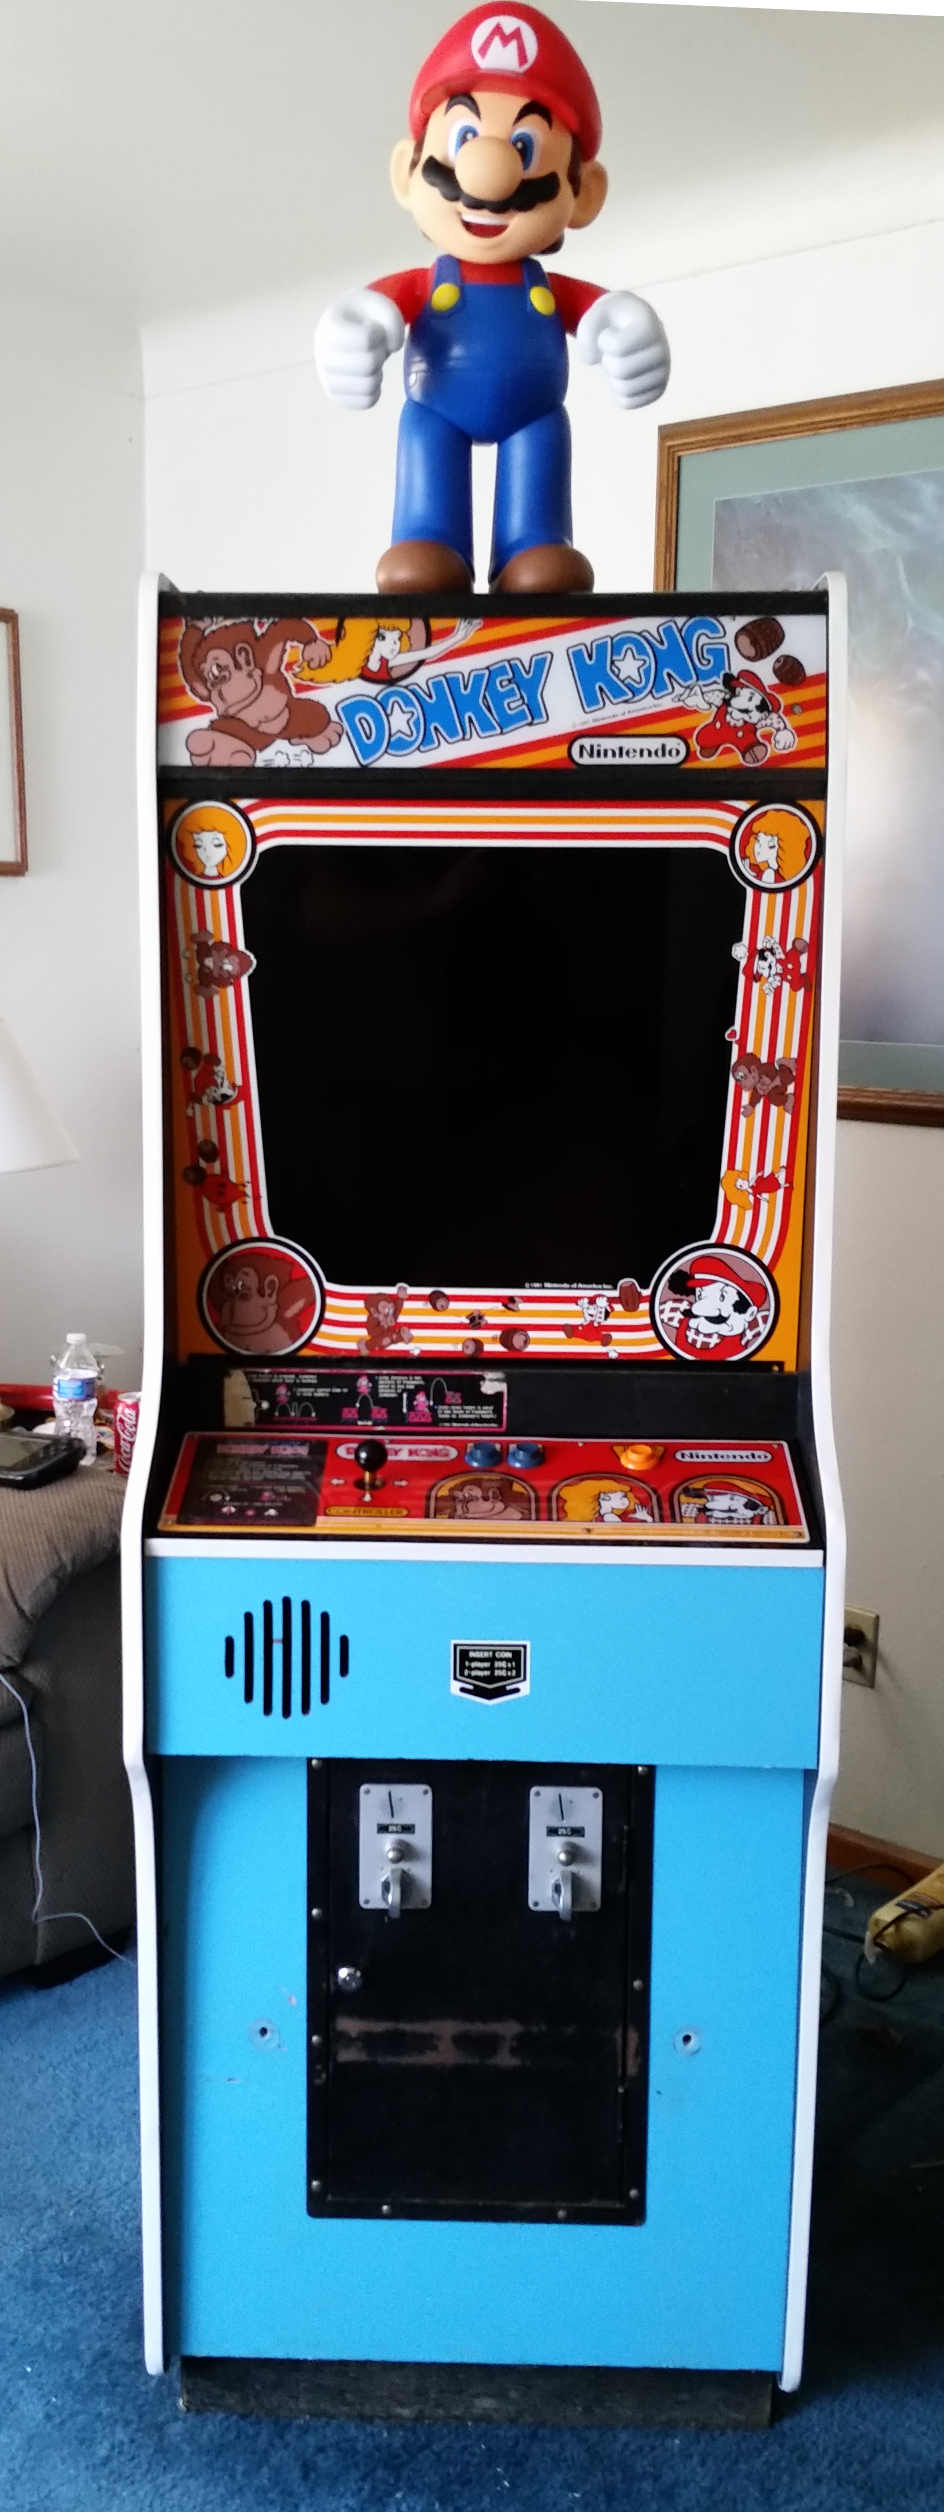 Donkey Kong rom files for programming EPROMs - Arcade and Pinball